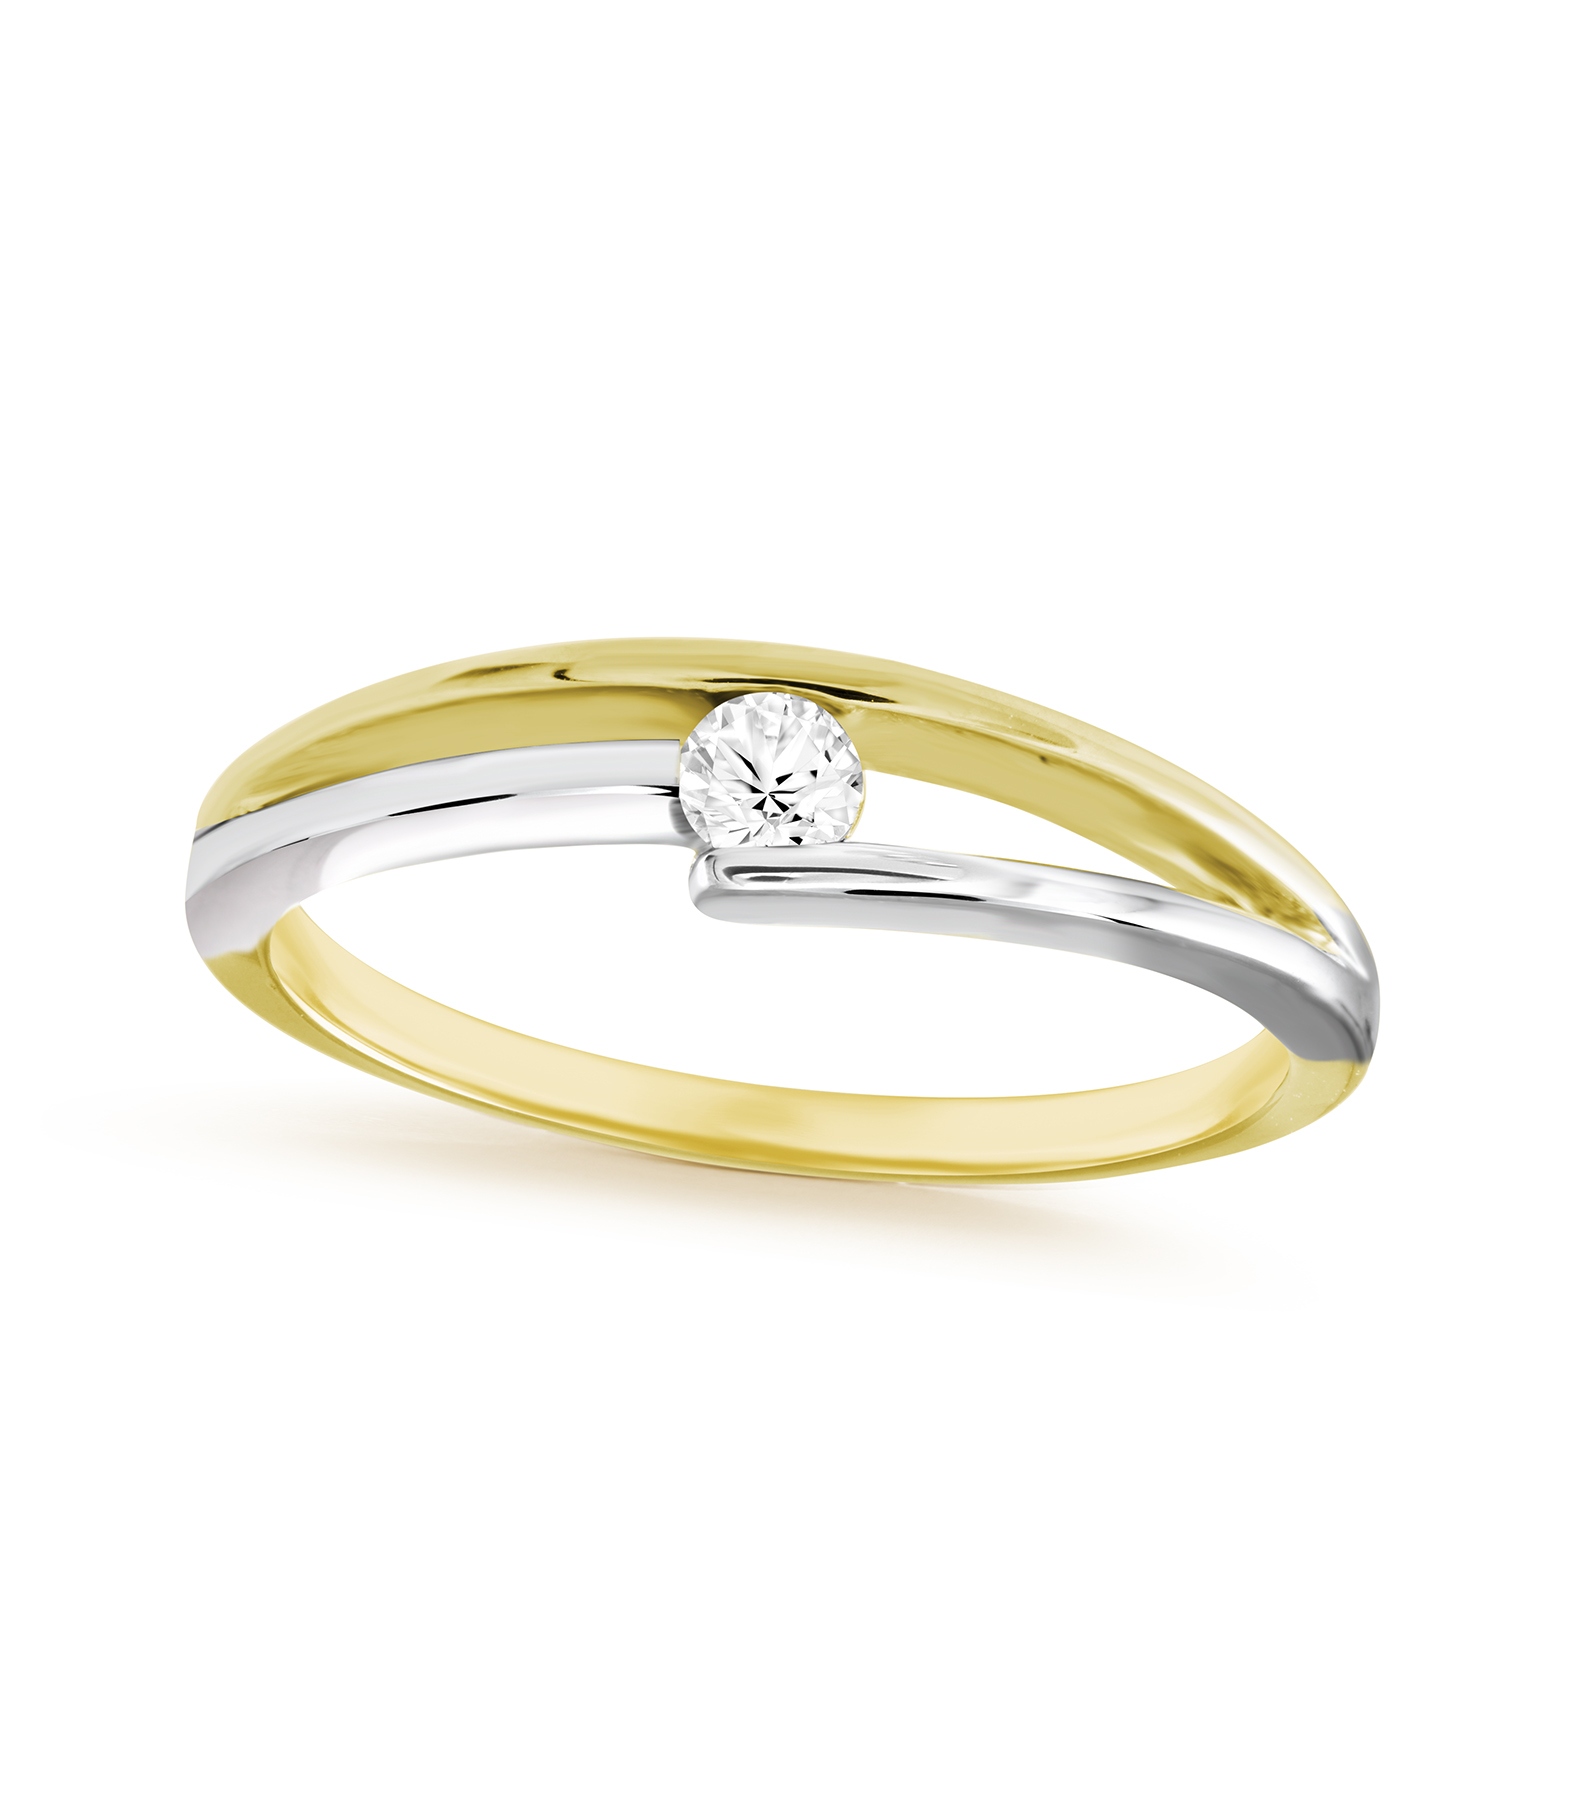 Women's ring - 10K 2-tone Gold (yellow and white) & Solitaire diamond  0.10 Carat T.W.